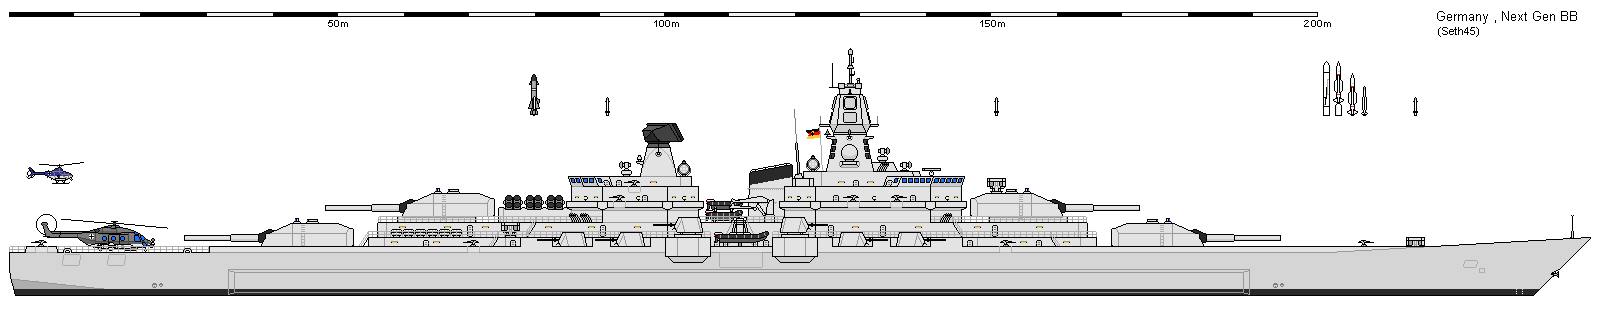 Pick holes in popular ship designs Part Deux Page 114Modern Battleship Design